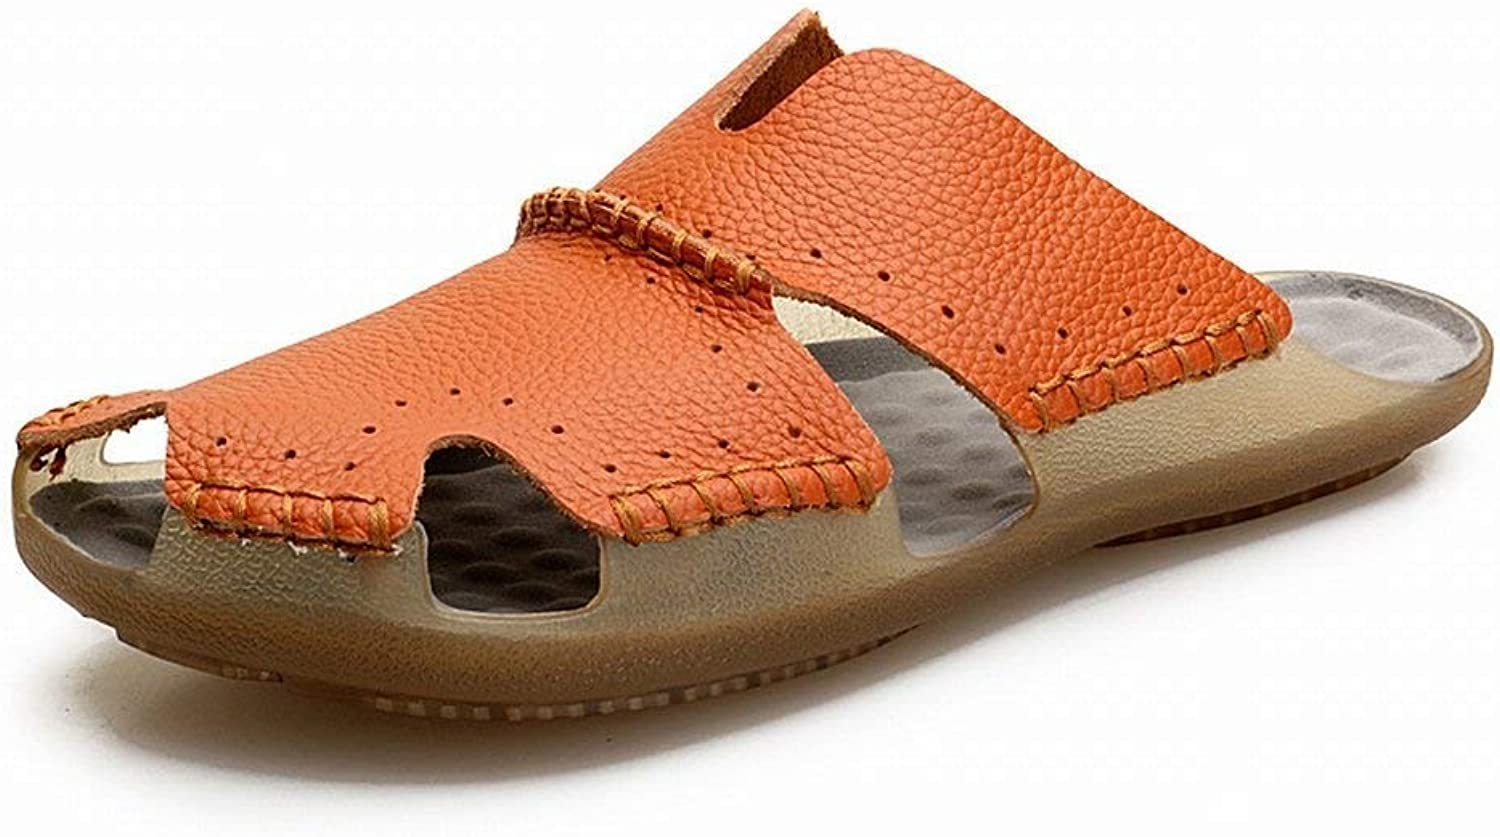 First layer of leather sandals Male Leather Baotou Beach shoes Leather Non-Slip Outdoor Sandals (color   Brown, Size   43)